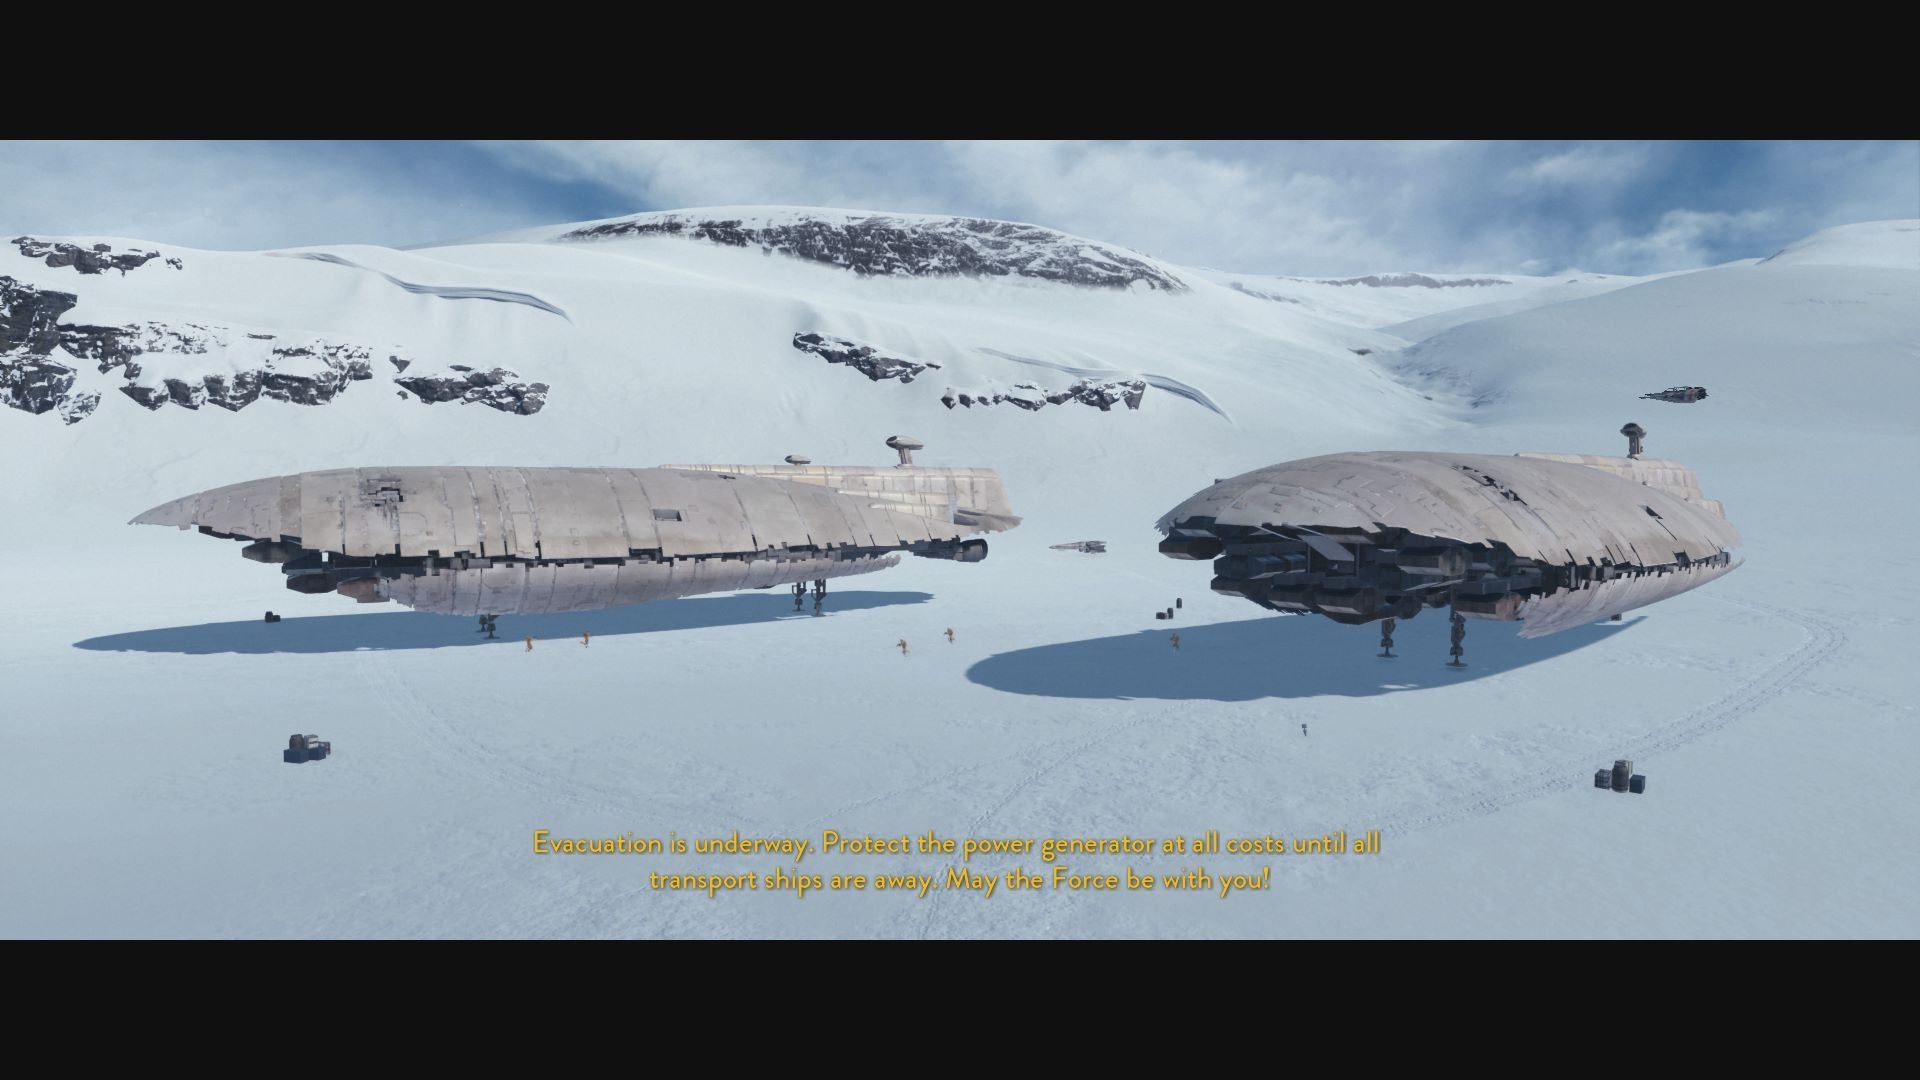 Star Wars Battlefront_Hoth Comparison_1